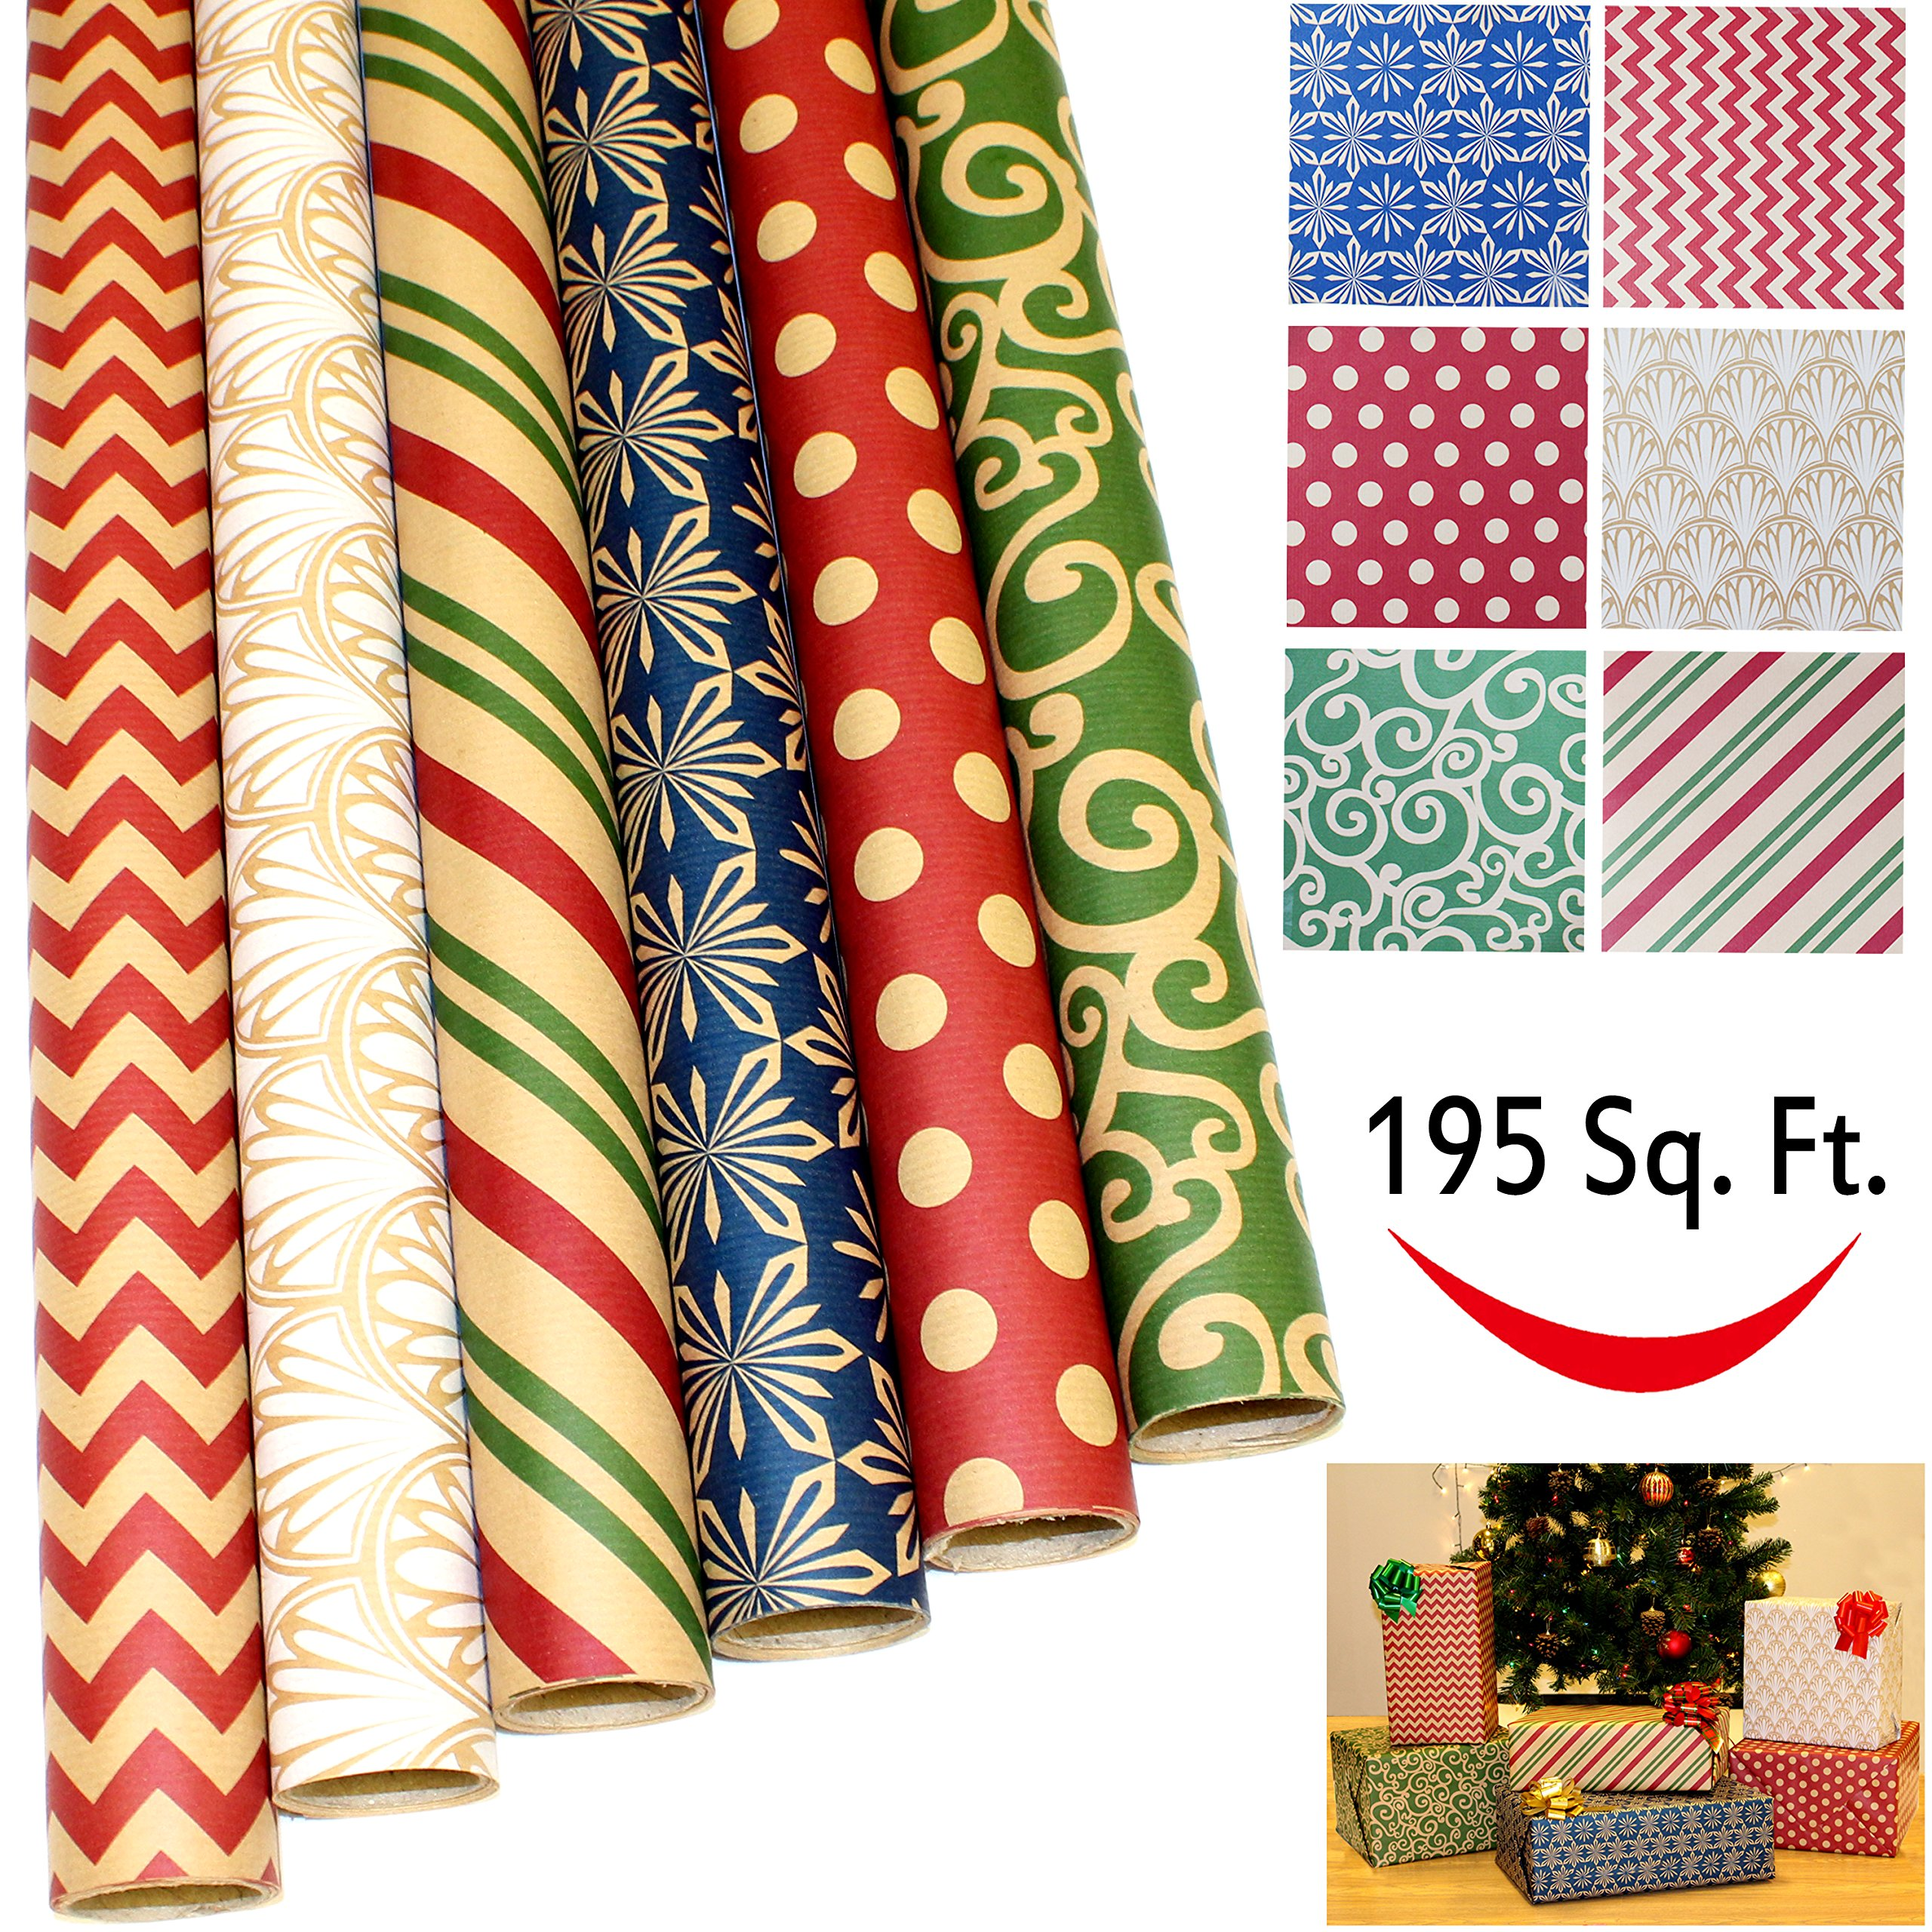 """6 Rolls Kraft Holiday Gift Wrapping Paper (30"""" X 156"""") for Holiday Gift Wrap, Christmas Gift Wrapping Decoration, Birthday Gift, Wedding and Party Favors by Joiedomi"""